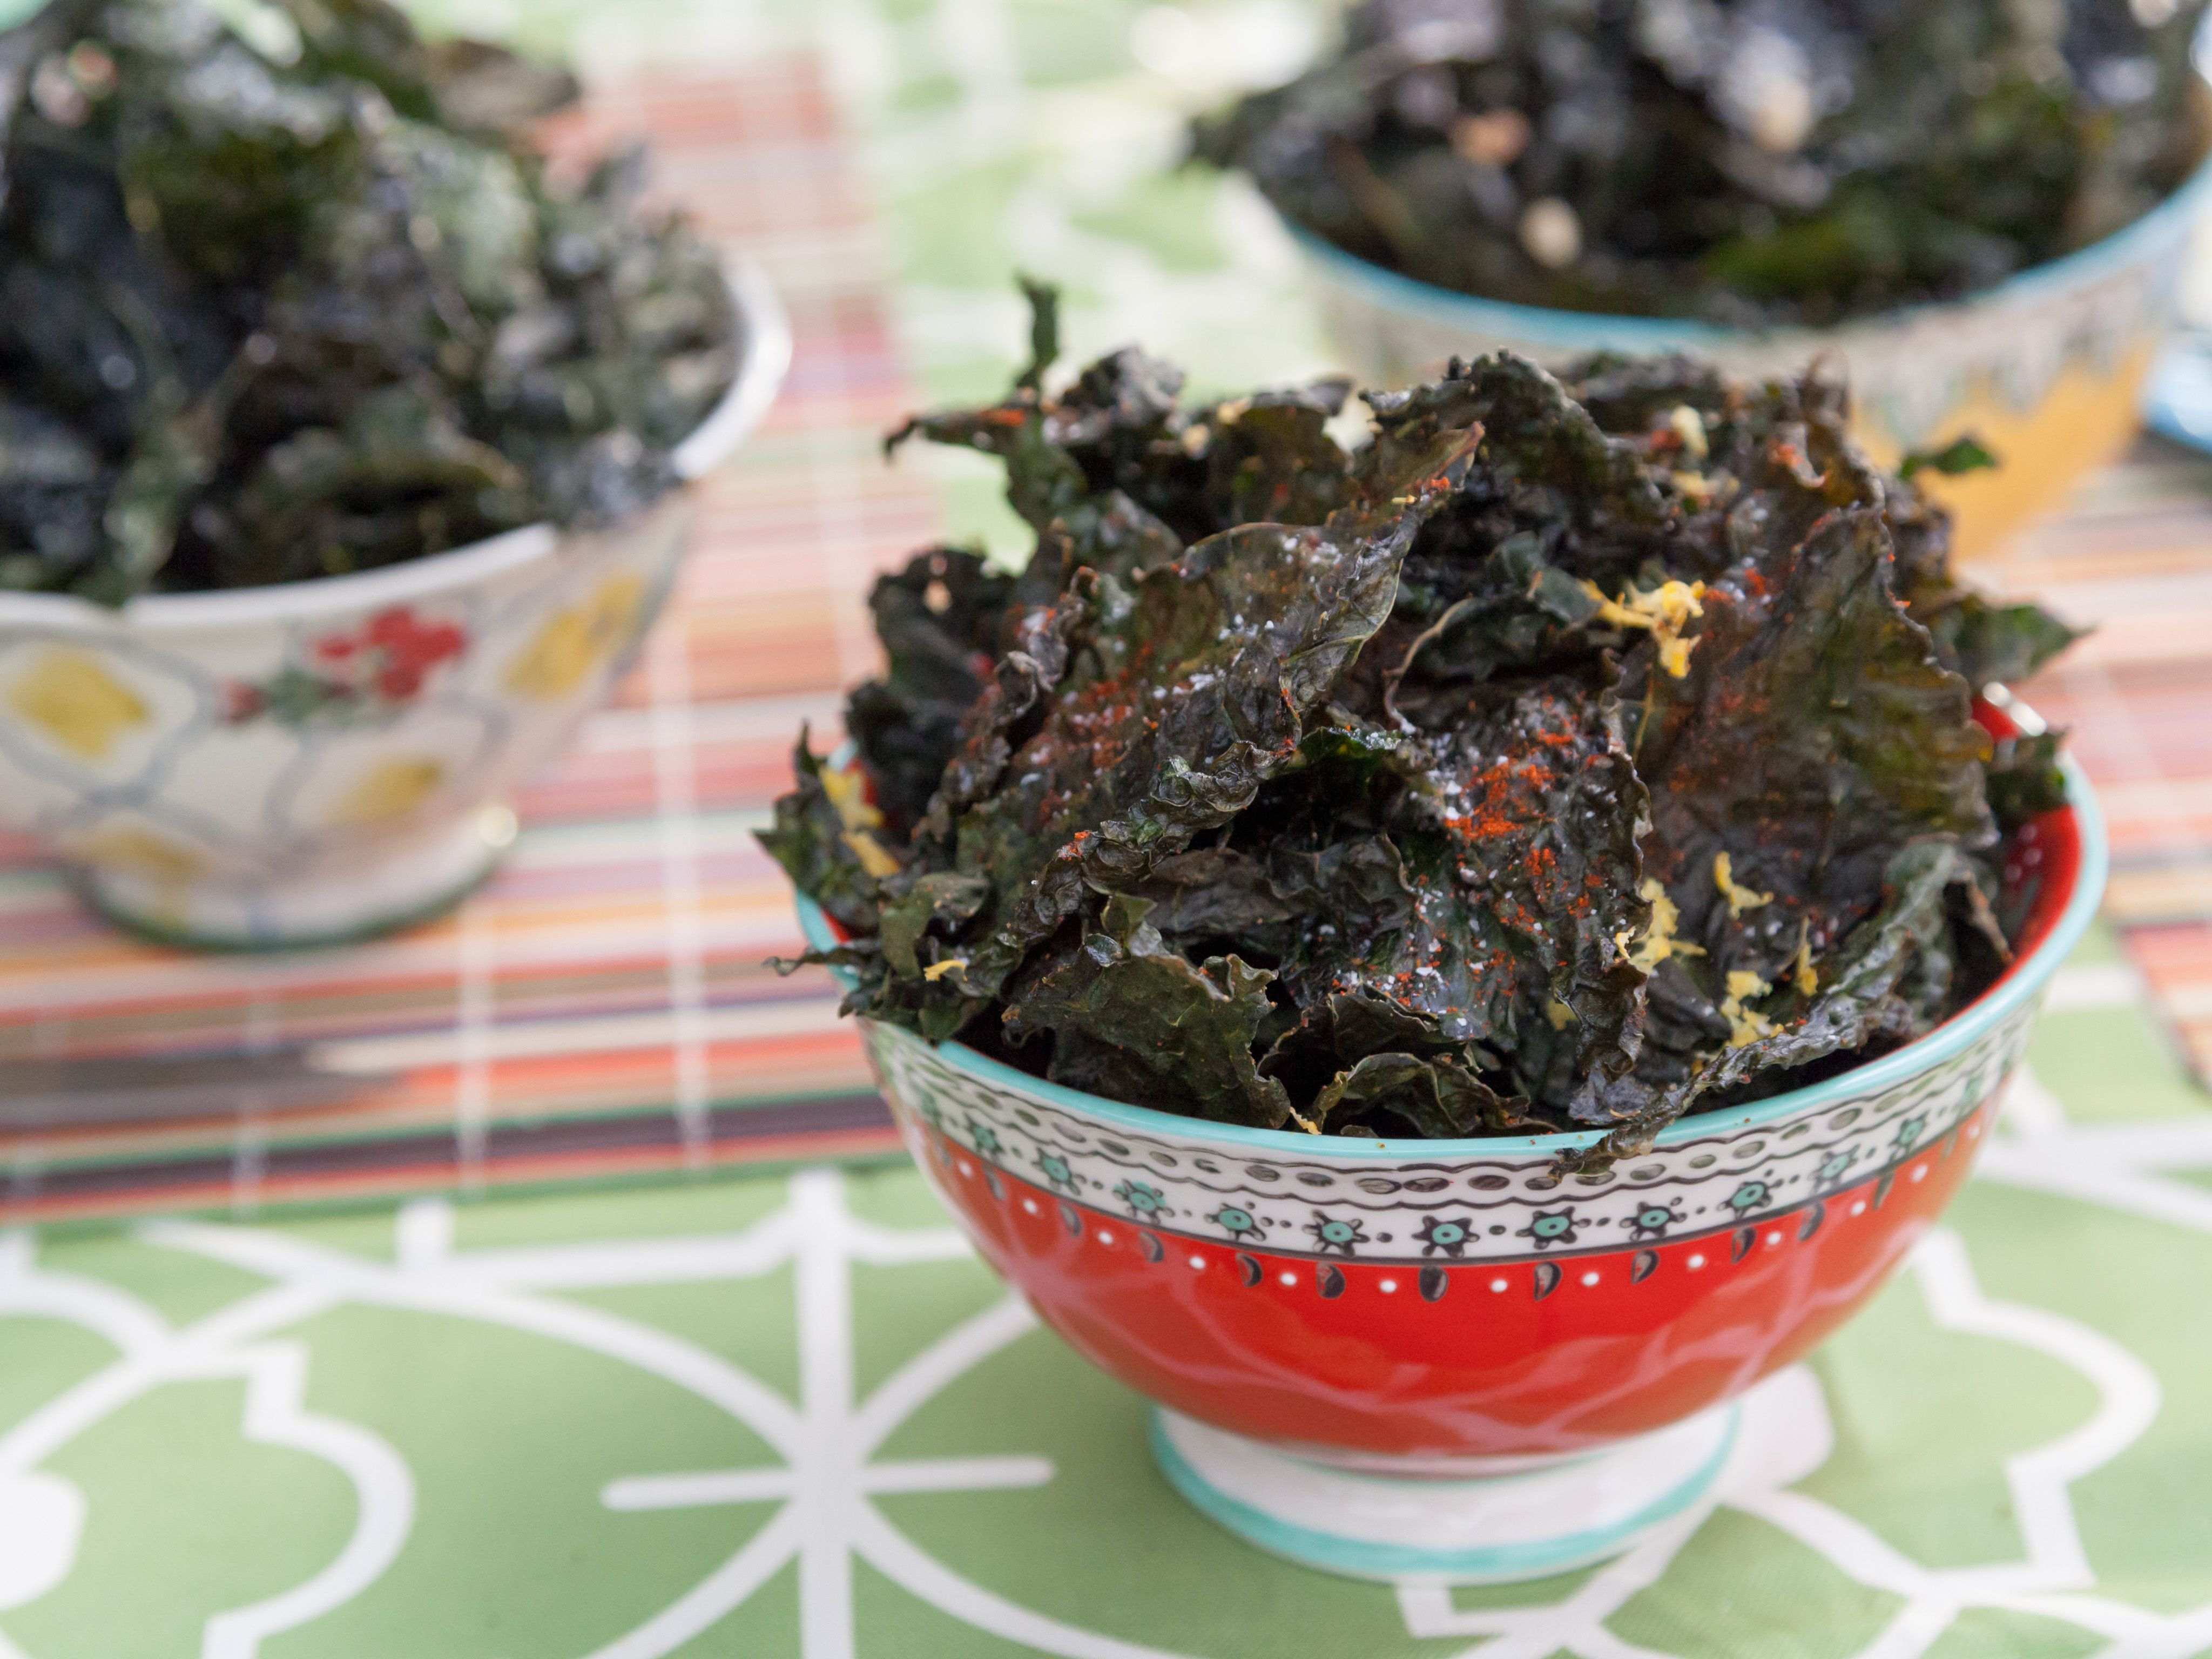 Kale chips three ways recipe valerie bertinelli kale and third dips kale chips three ways recipe from valerie bertinelli via food network forumfinder Images